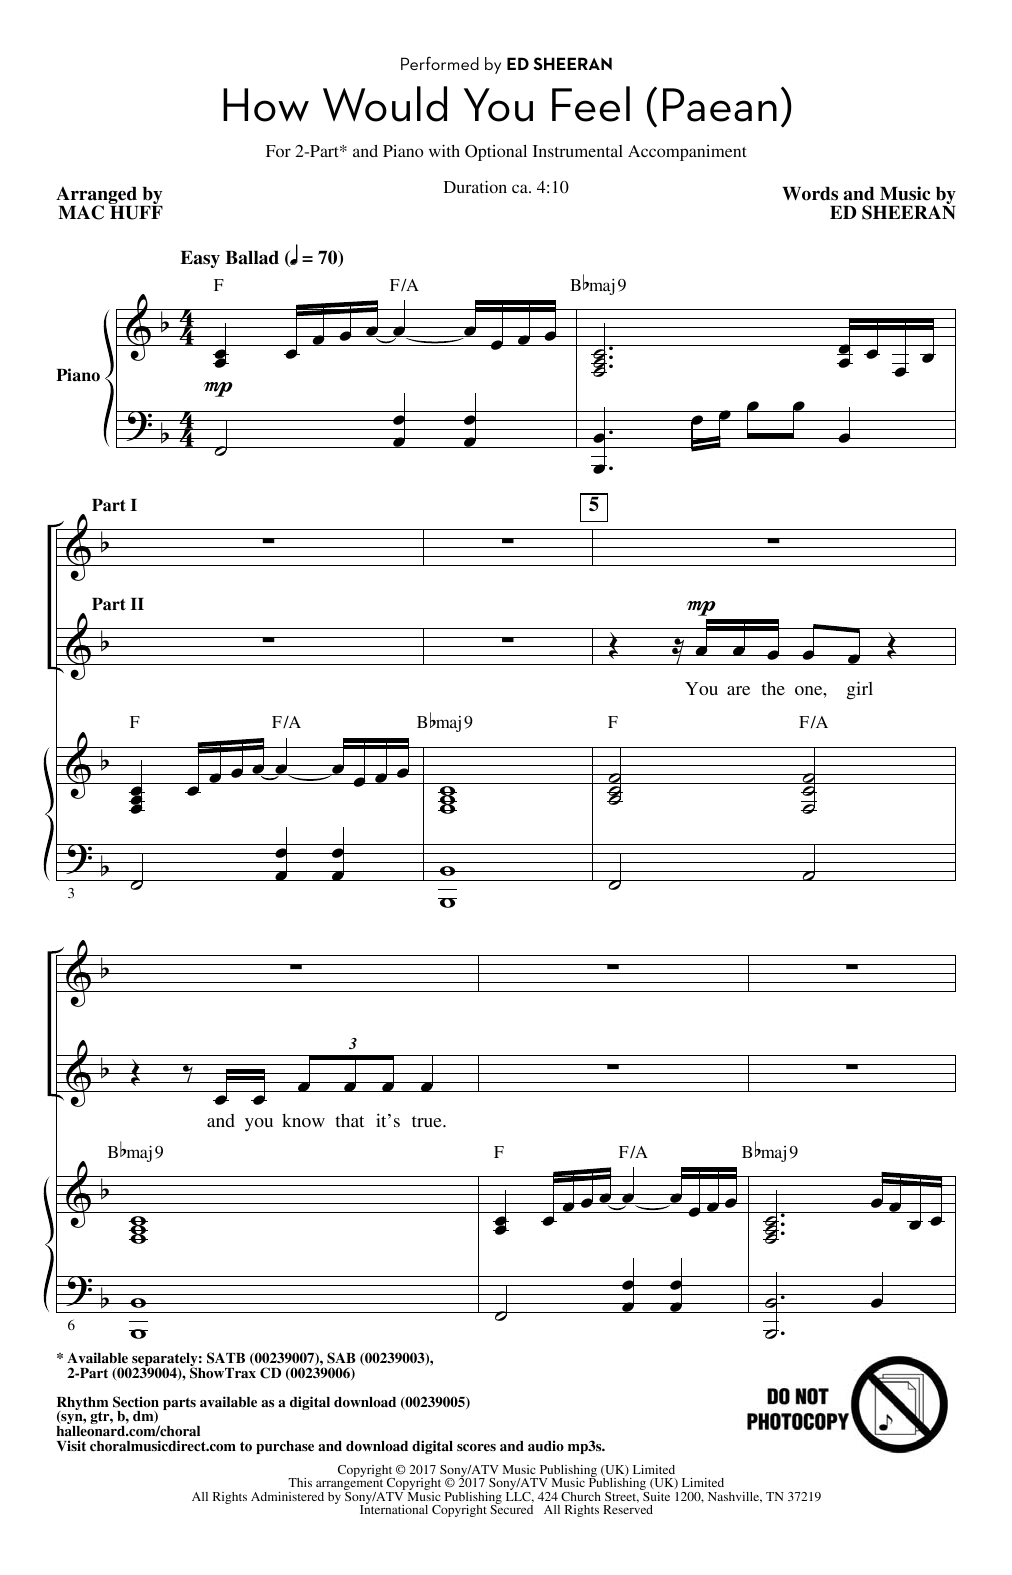 Ed Sheeran How Would You Feel (Paean) (arr. Mac Huff) sheet music notes and chords. Download Printable PDF.